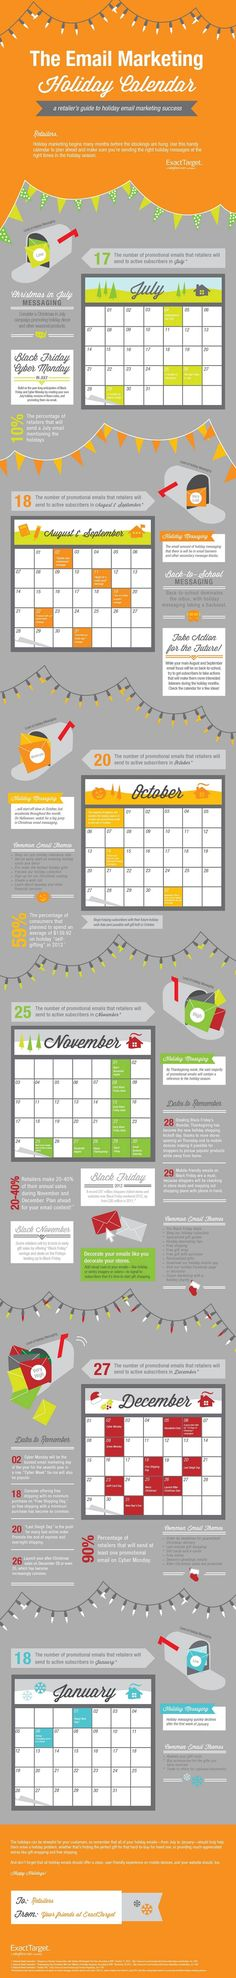 Email Marketing - The Email Marketing Holiday Calendar [Infographic] :  #email #marketing